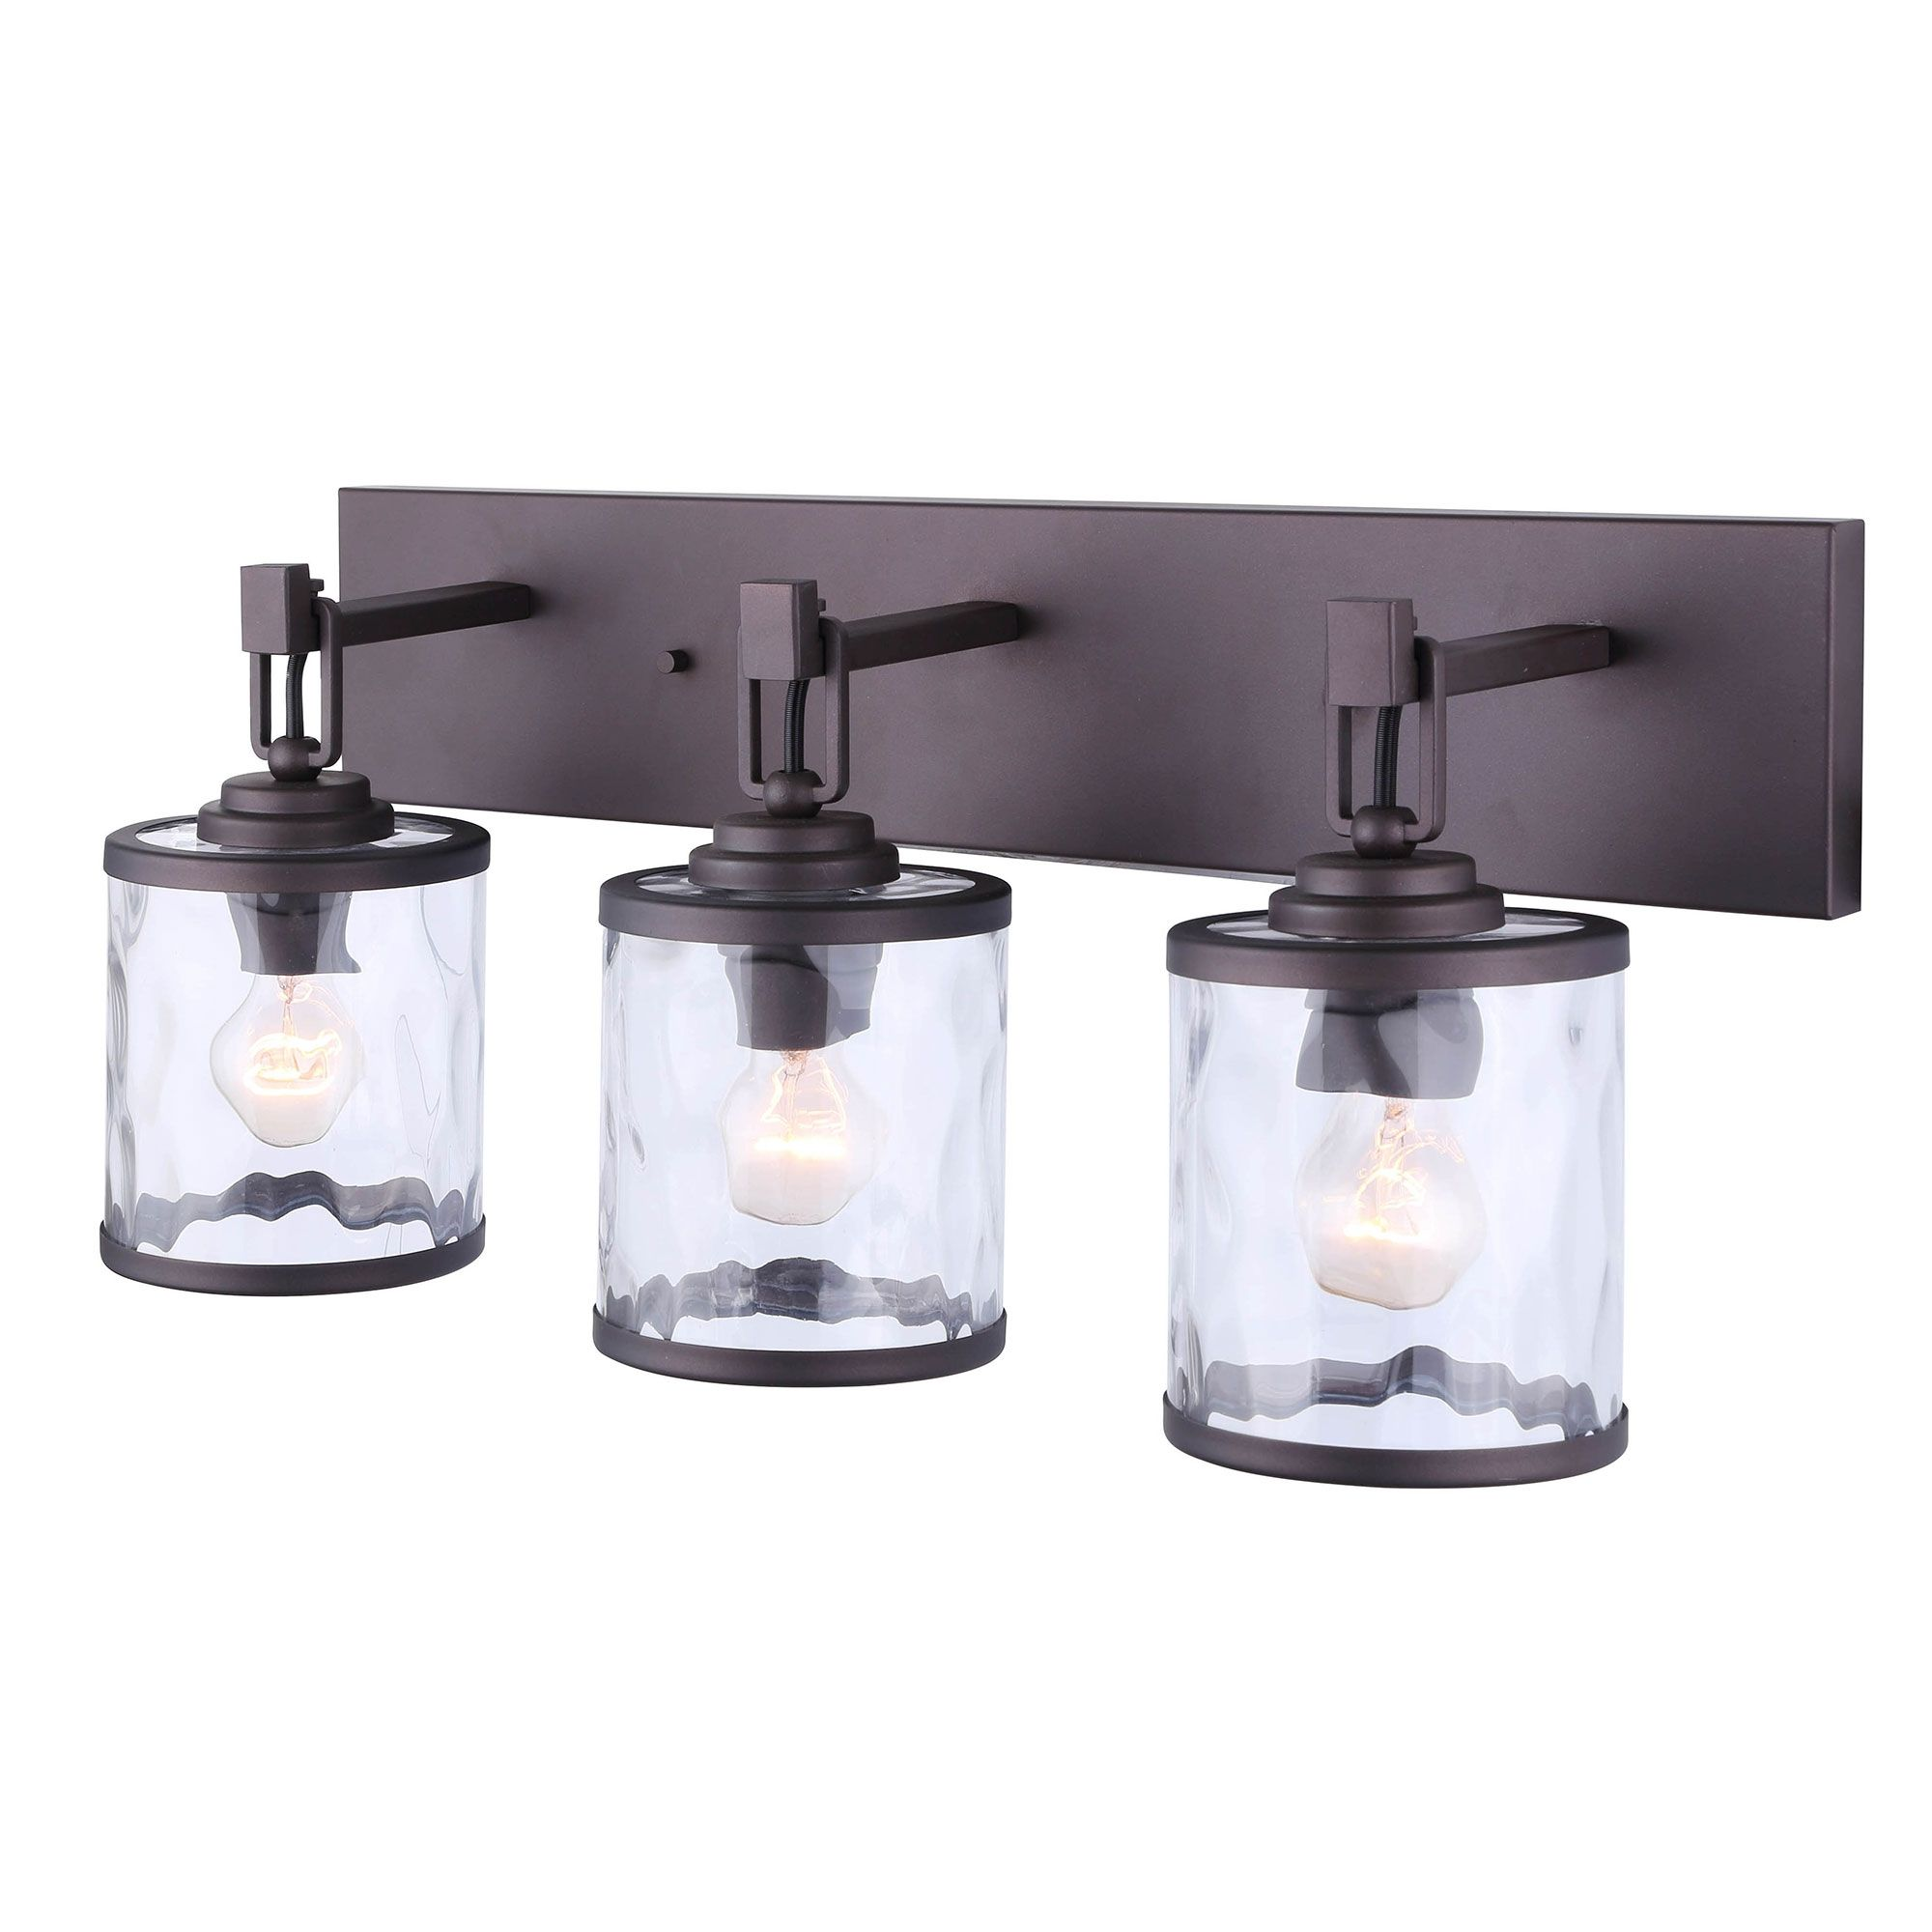 Photo of CANARM IVL677A03ORB Cala 3 Light Vanity, bronze